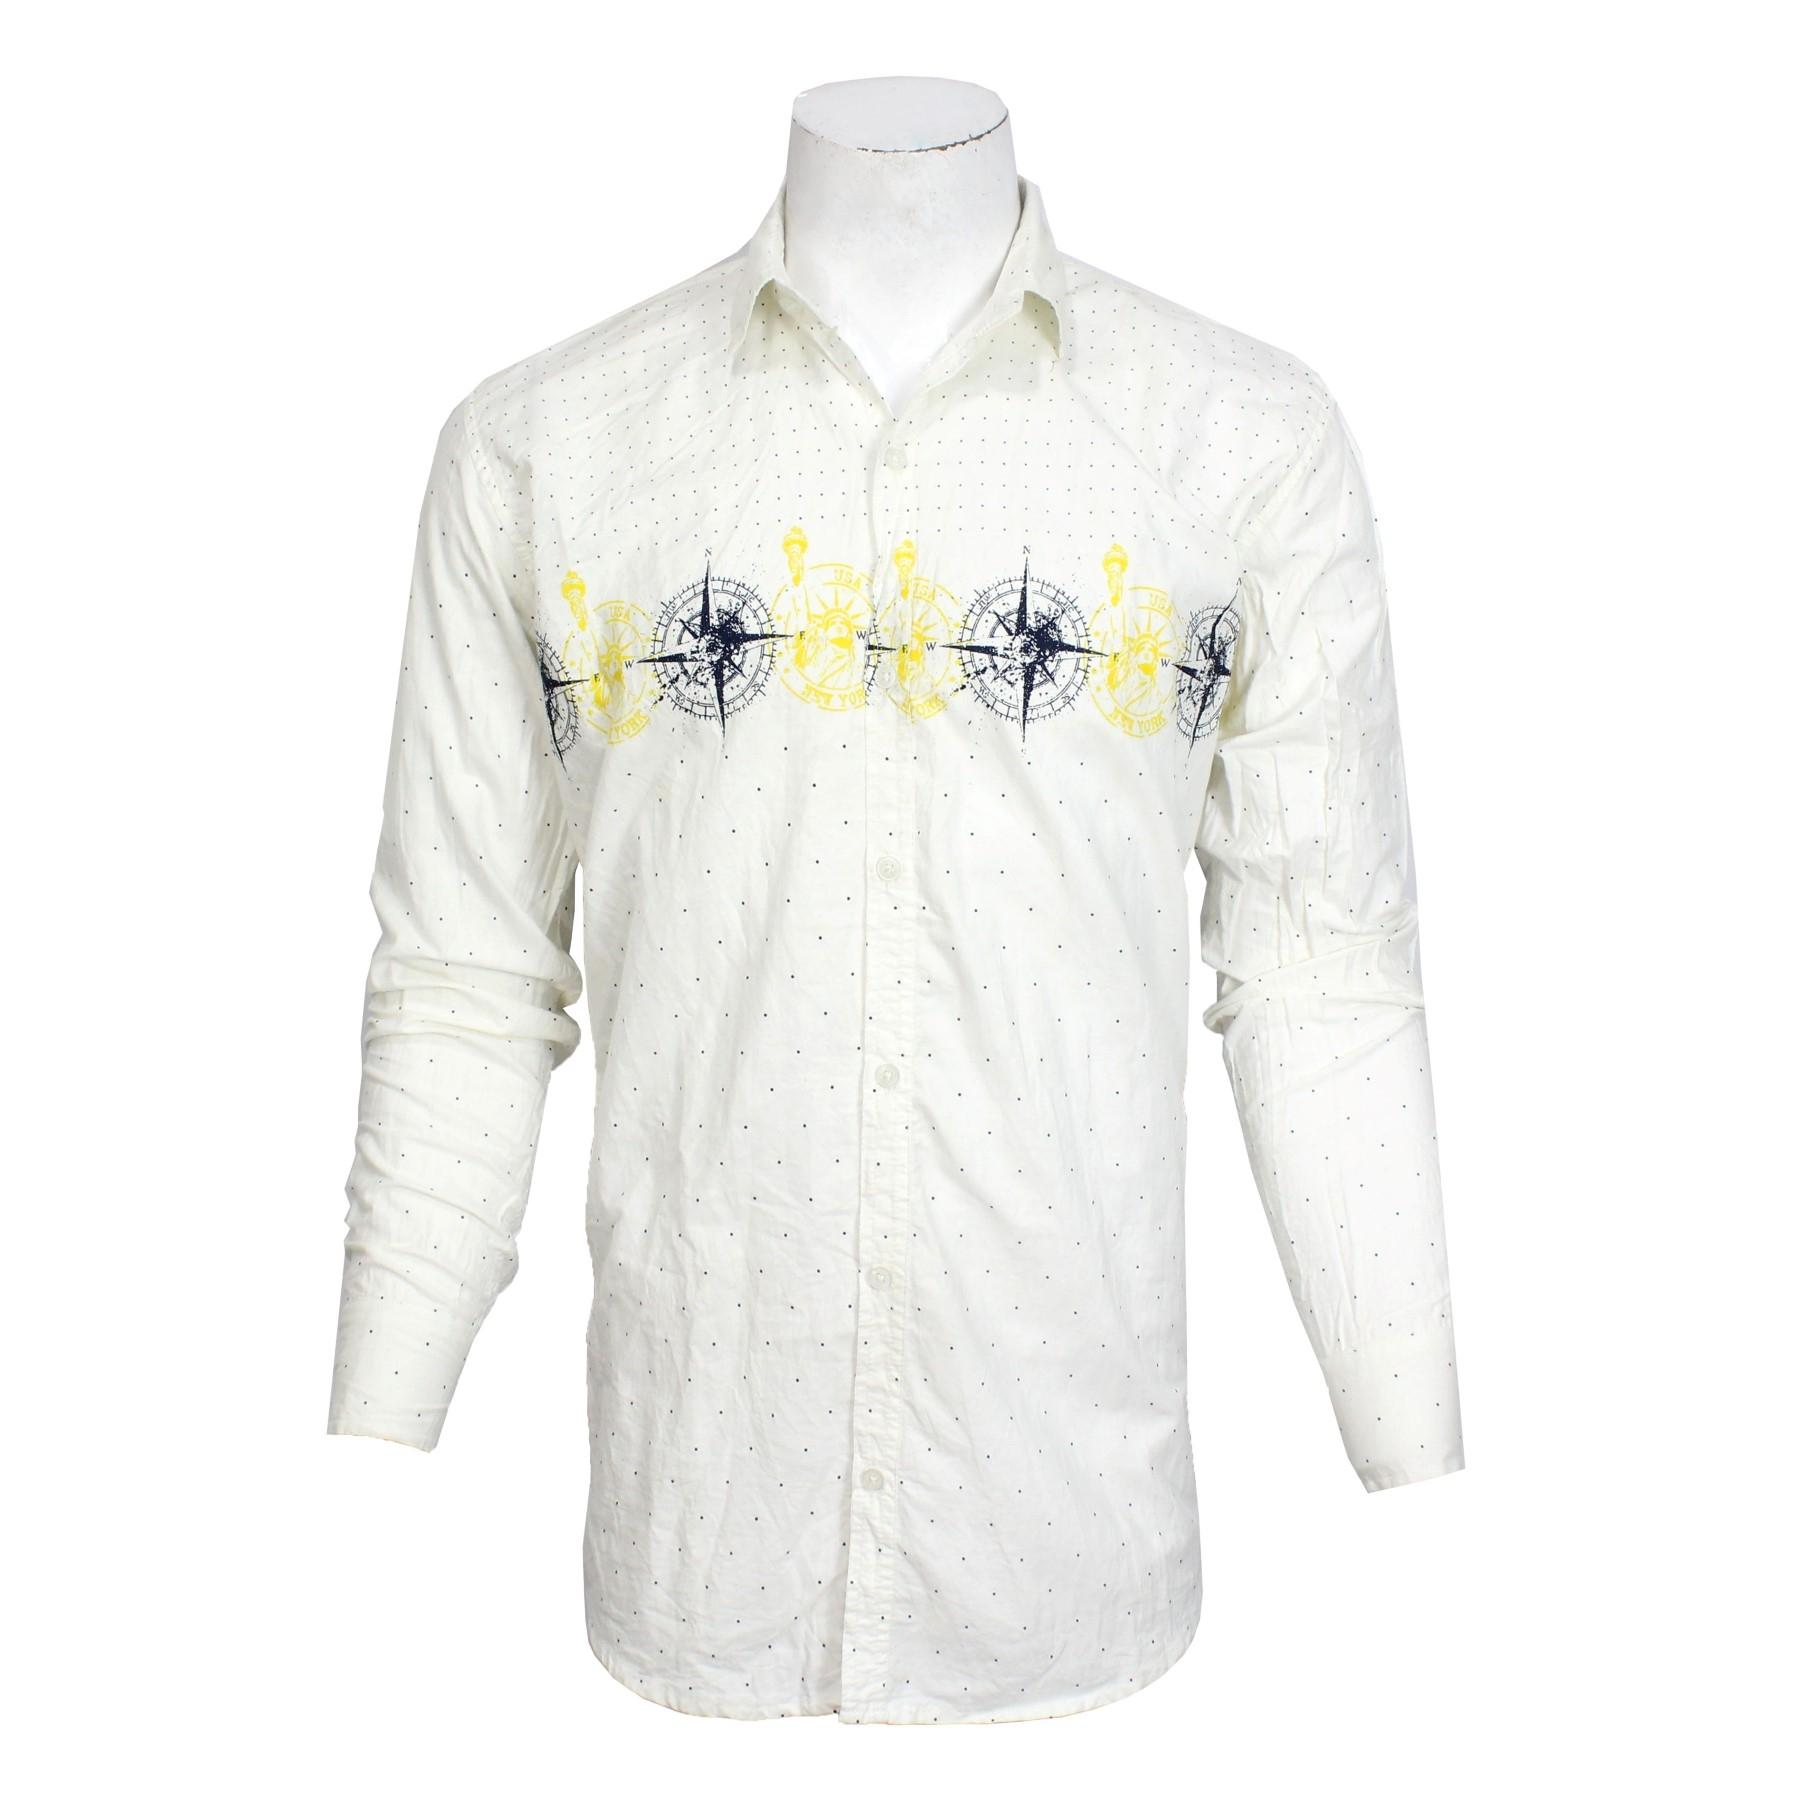 210e56c8ee1 Men s Shirts In Nepal At Best Prices - Daraz.com.np